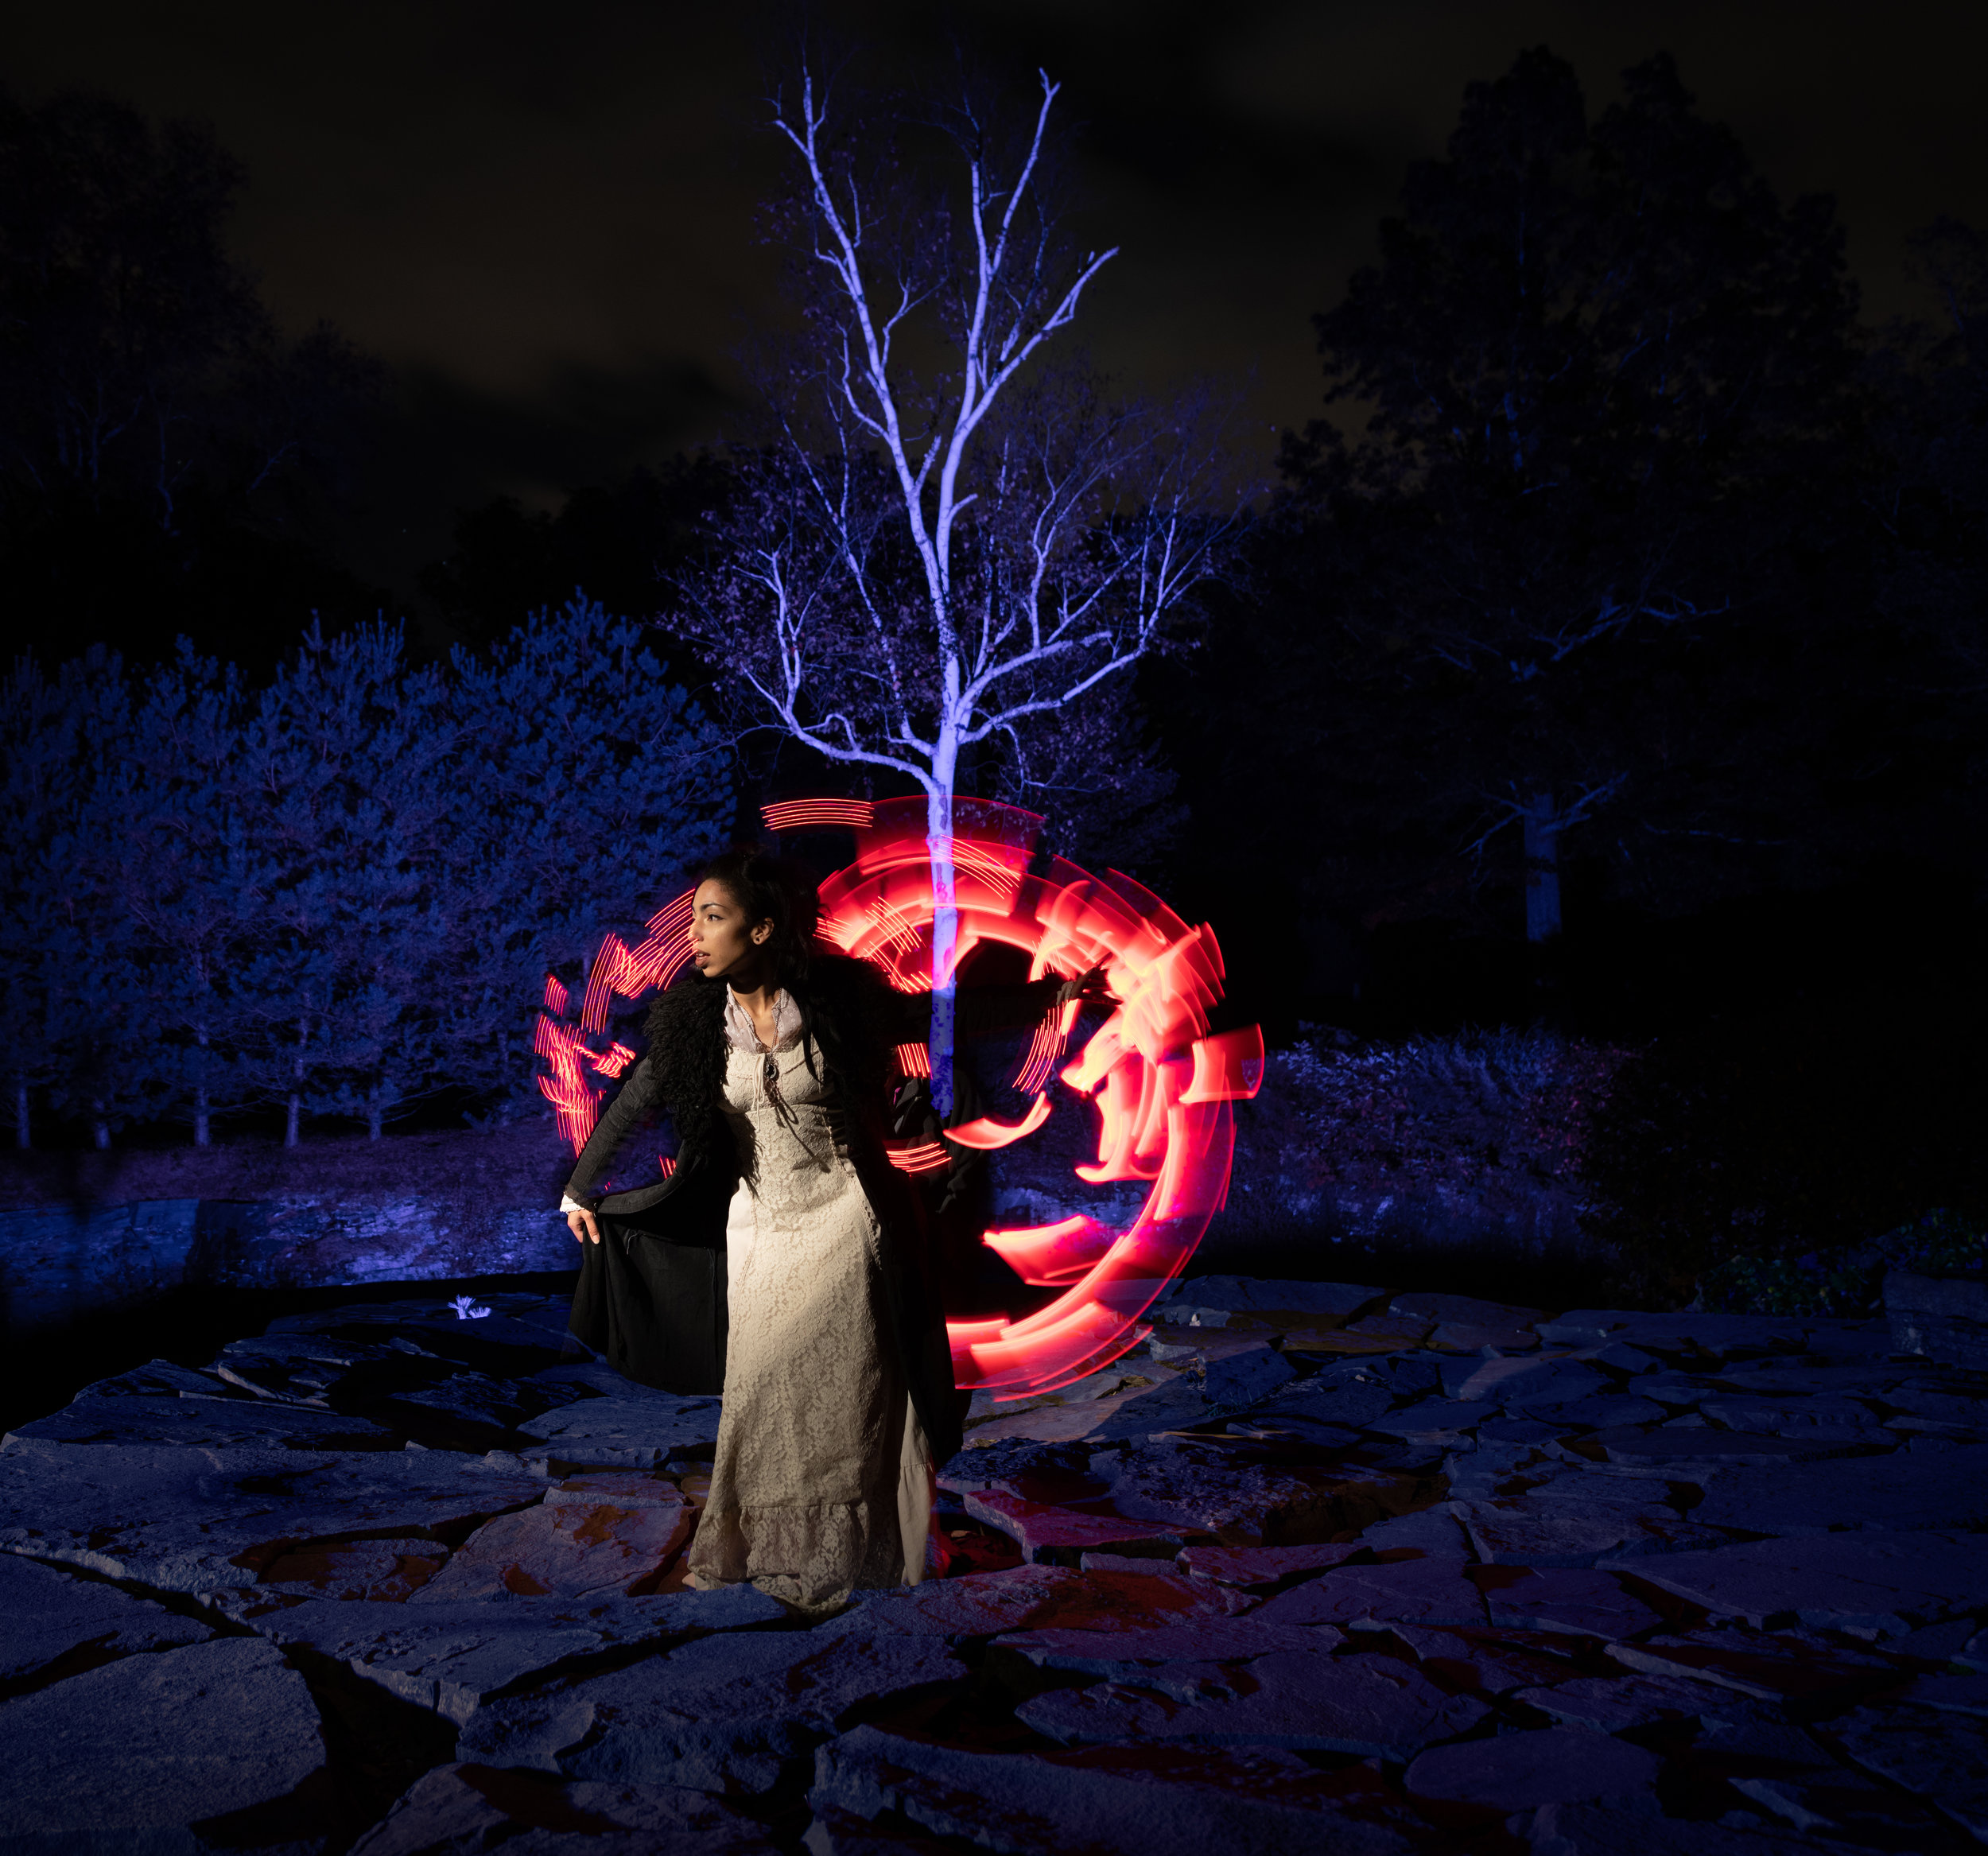 <p><strong>Catskill Night Portraiture</strong><br/> October 29-November 3, 2020</p>